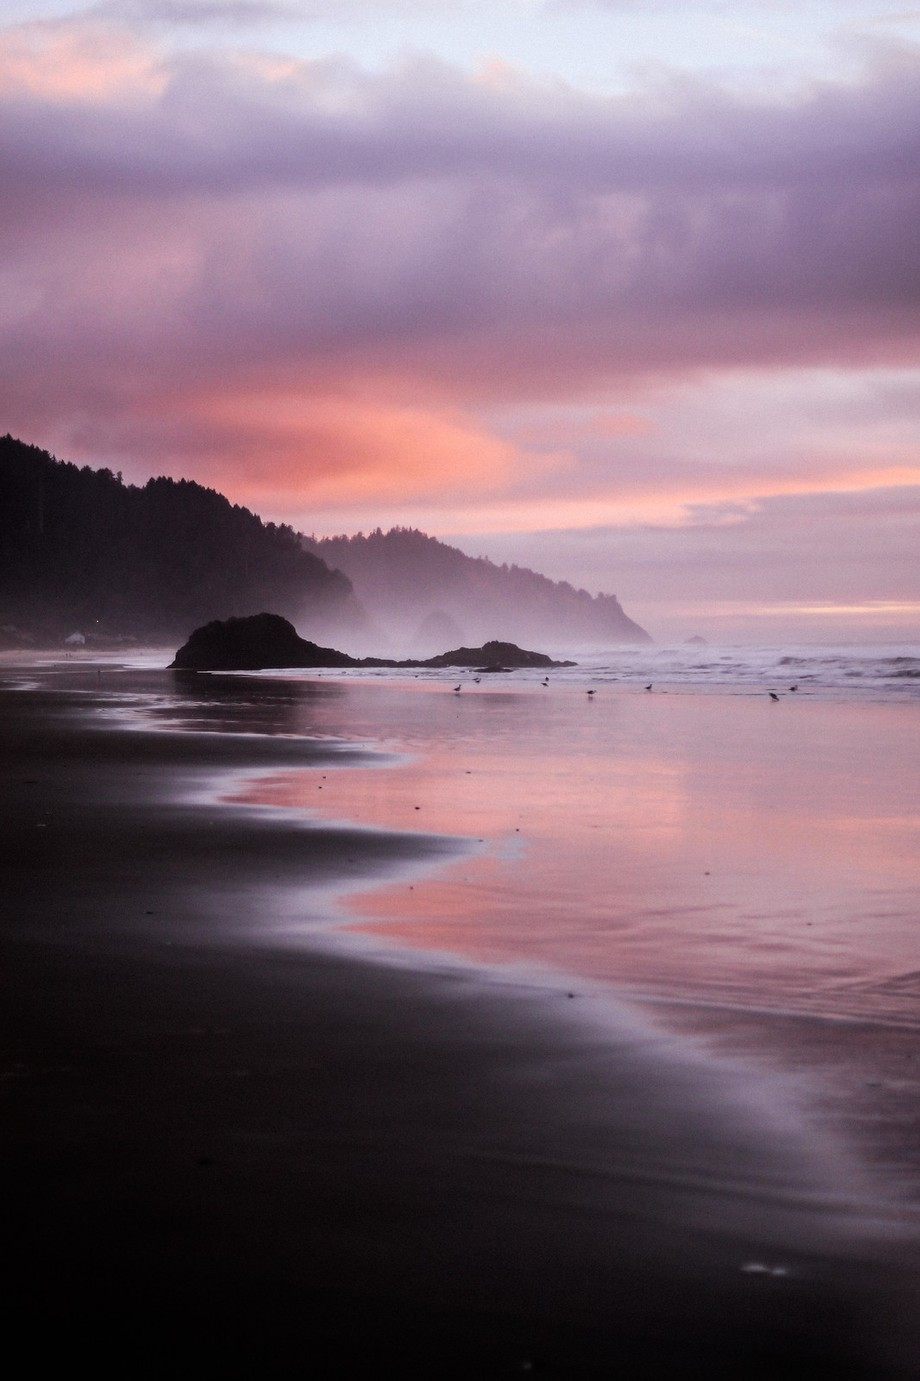 Sunset at Cannon Beach by coleito